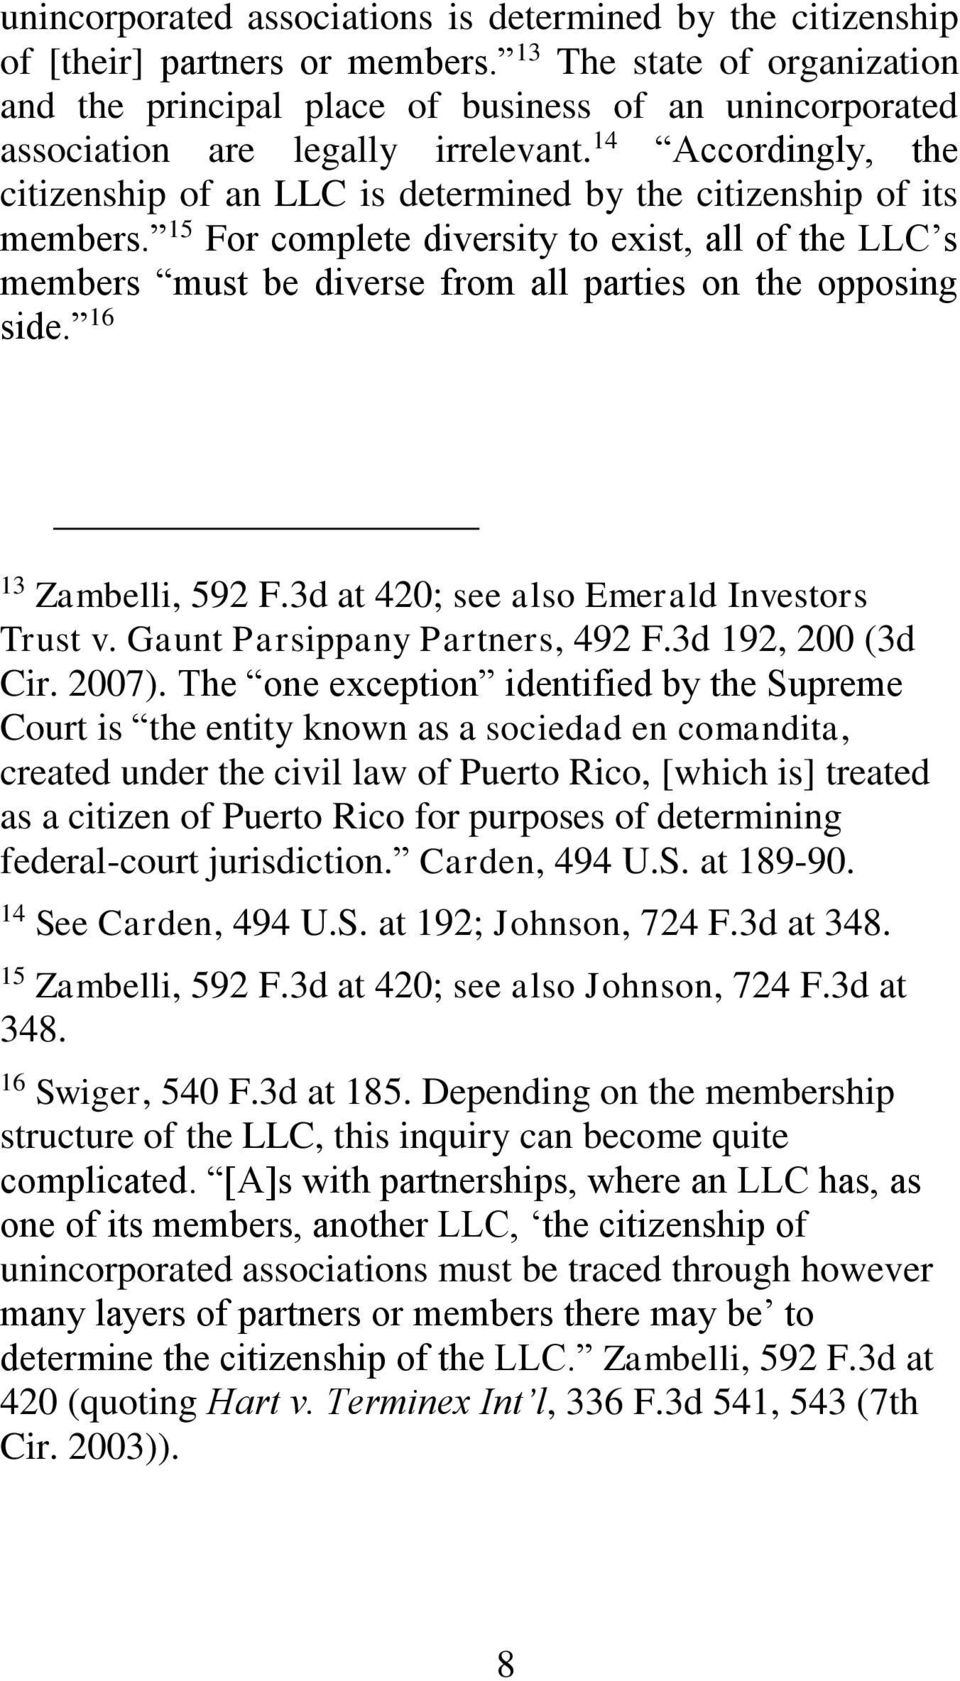 14 Accordingly, the citizenship of an LLC is determined by the citizenship of its members.